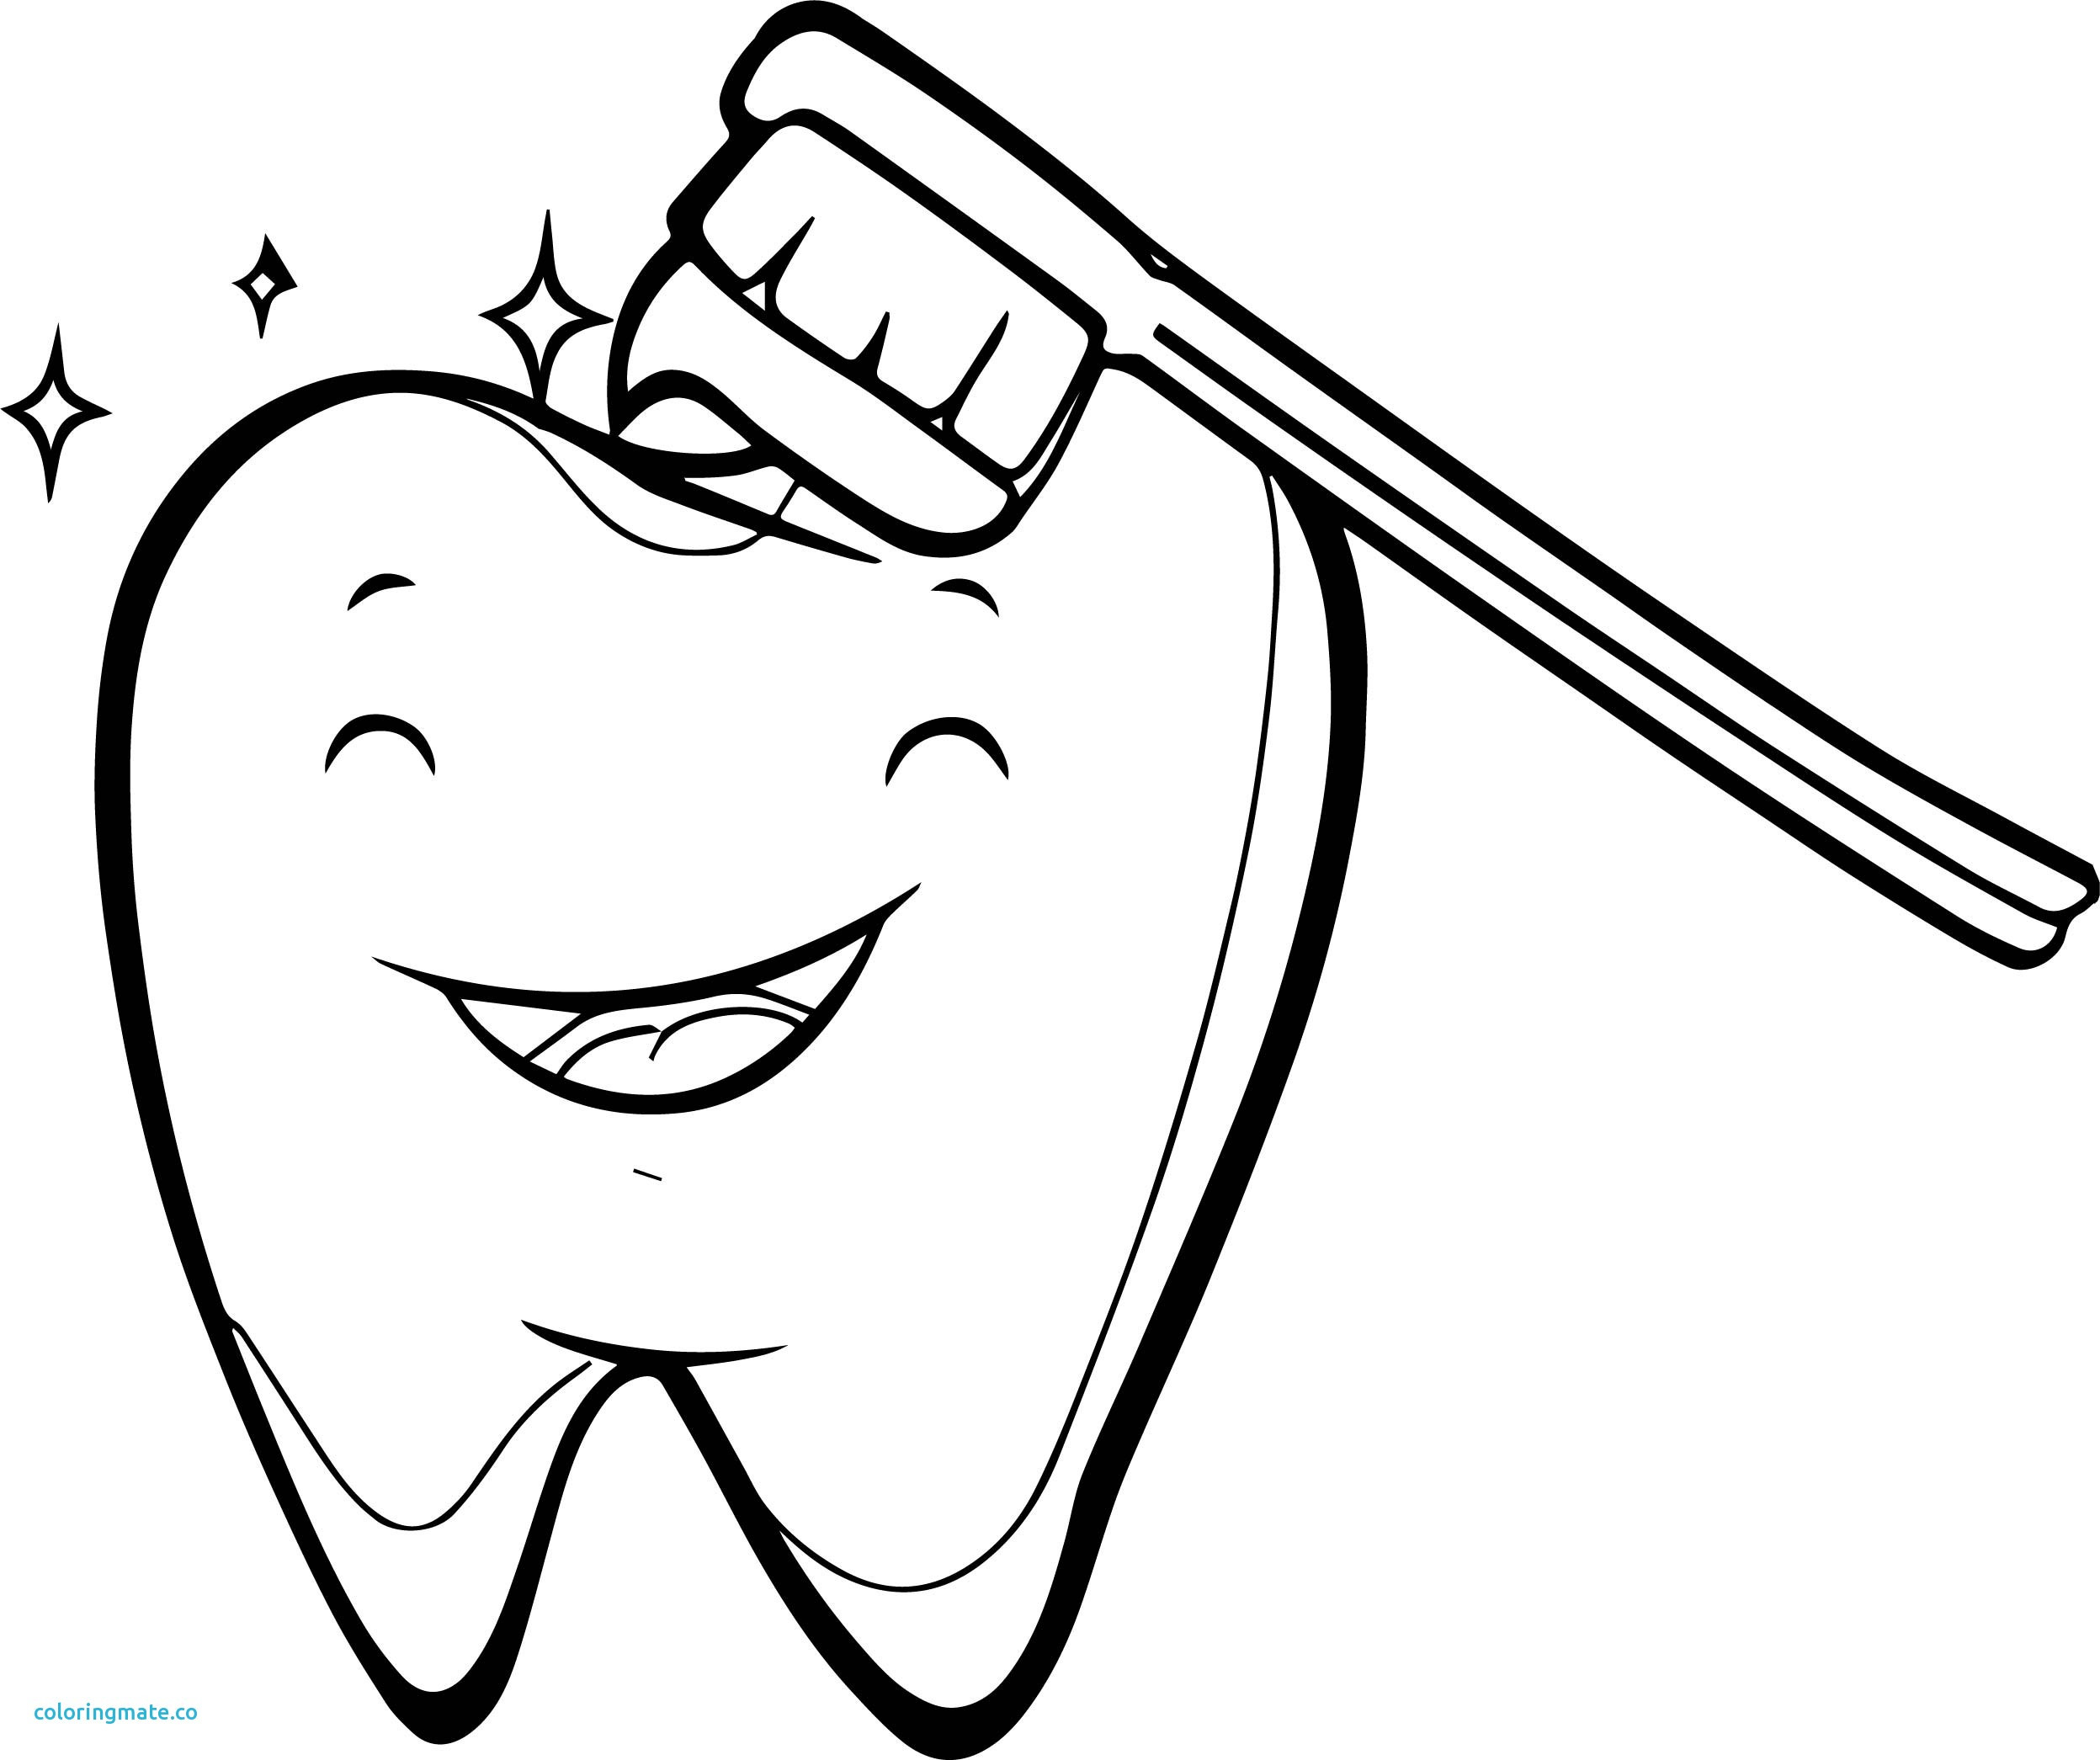 It is a graphic of Clean Teeth Coloring Sheet